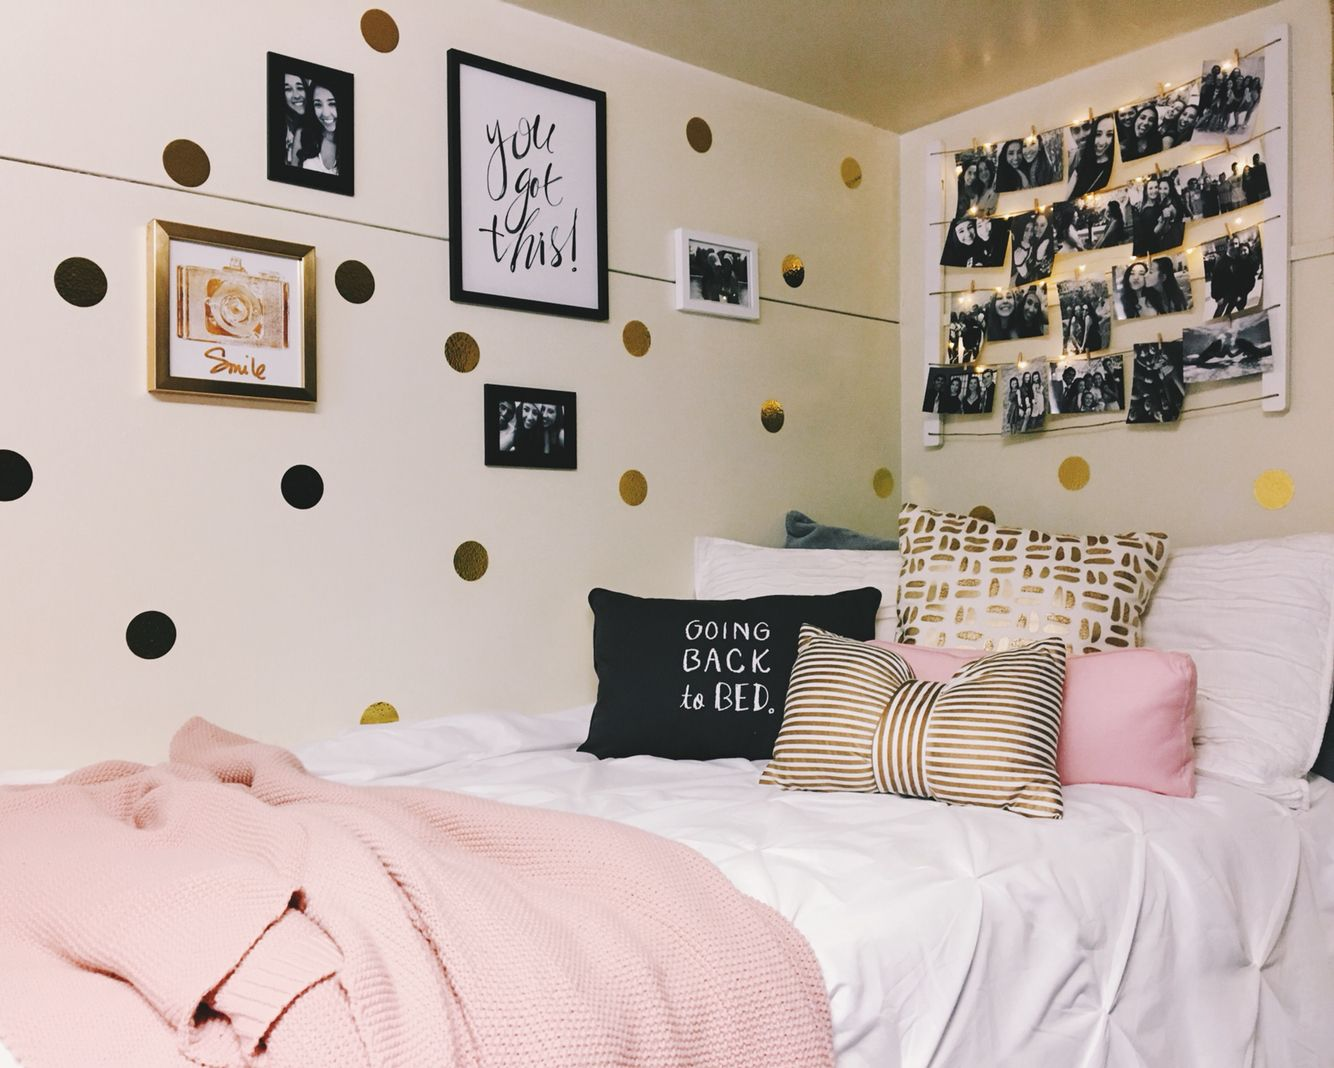 27 Girls Room Decor Ideas To Change The Feel Of The Room Dorm